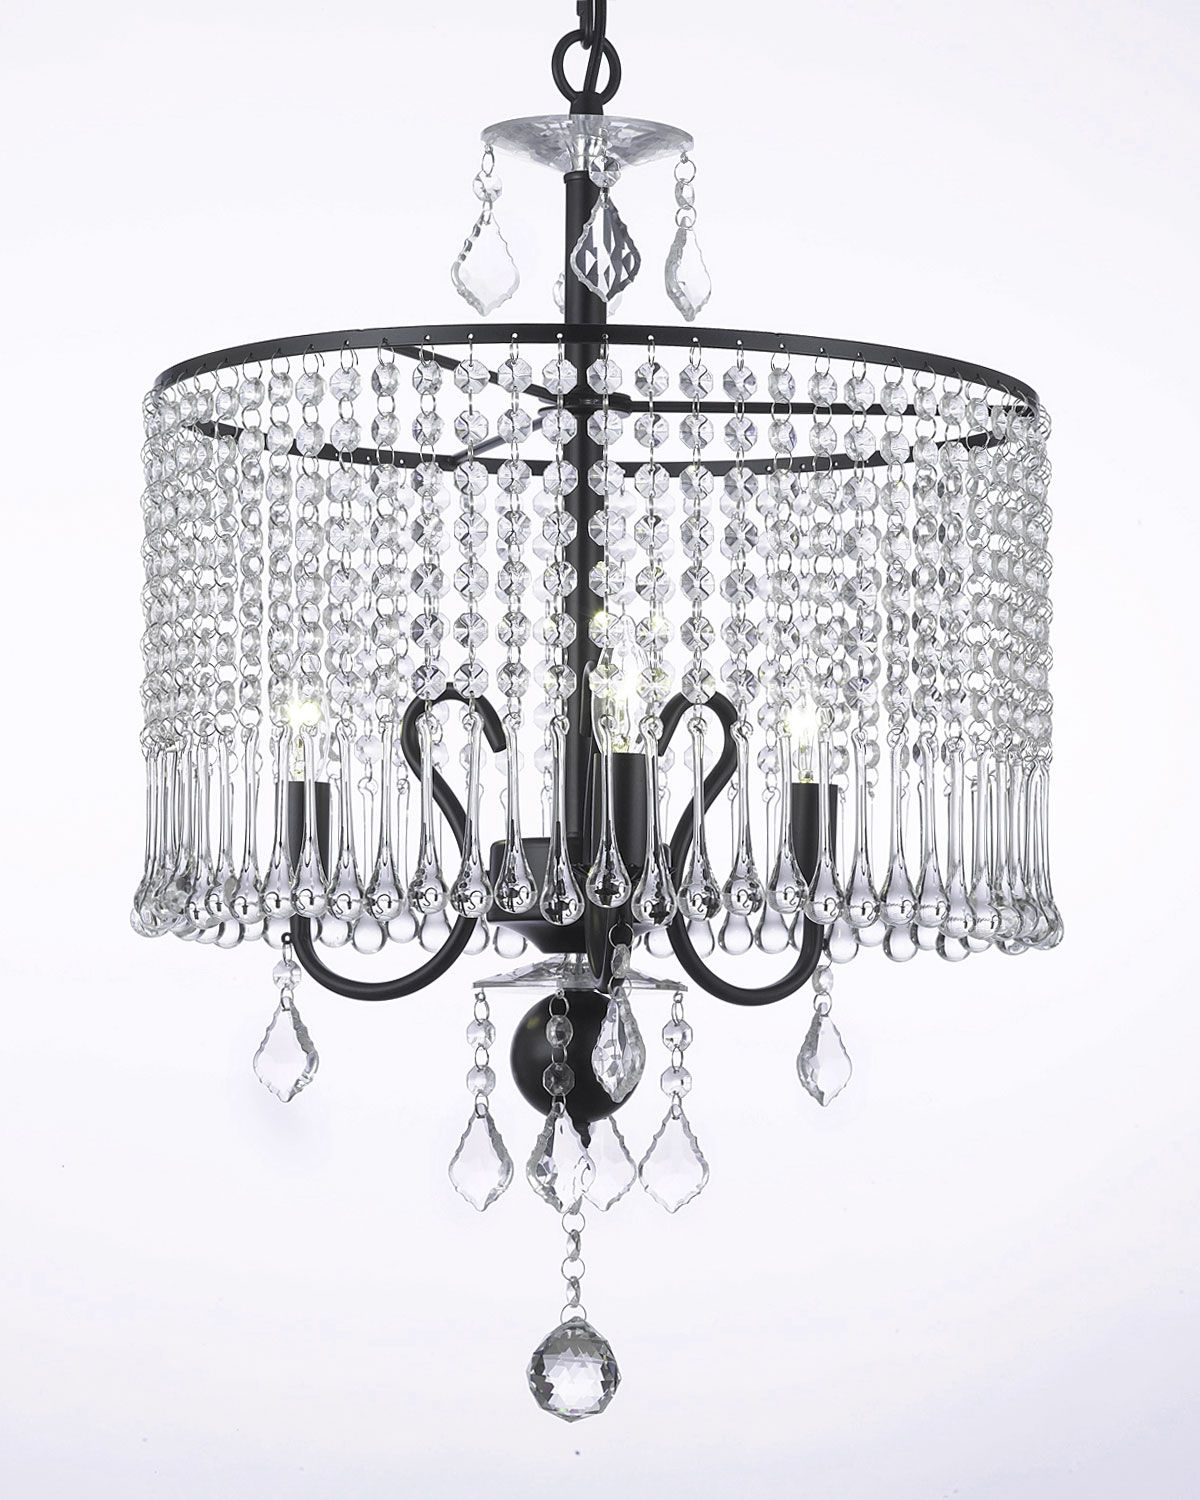 G7 Black 1000 3 Shade In Crystals Falling In A An 8 Crystal Drop 99 00 Crystal Chandelier Lighting Crystal Chandelier Wrought Iron Chandeliers